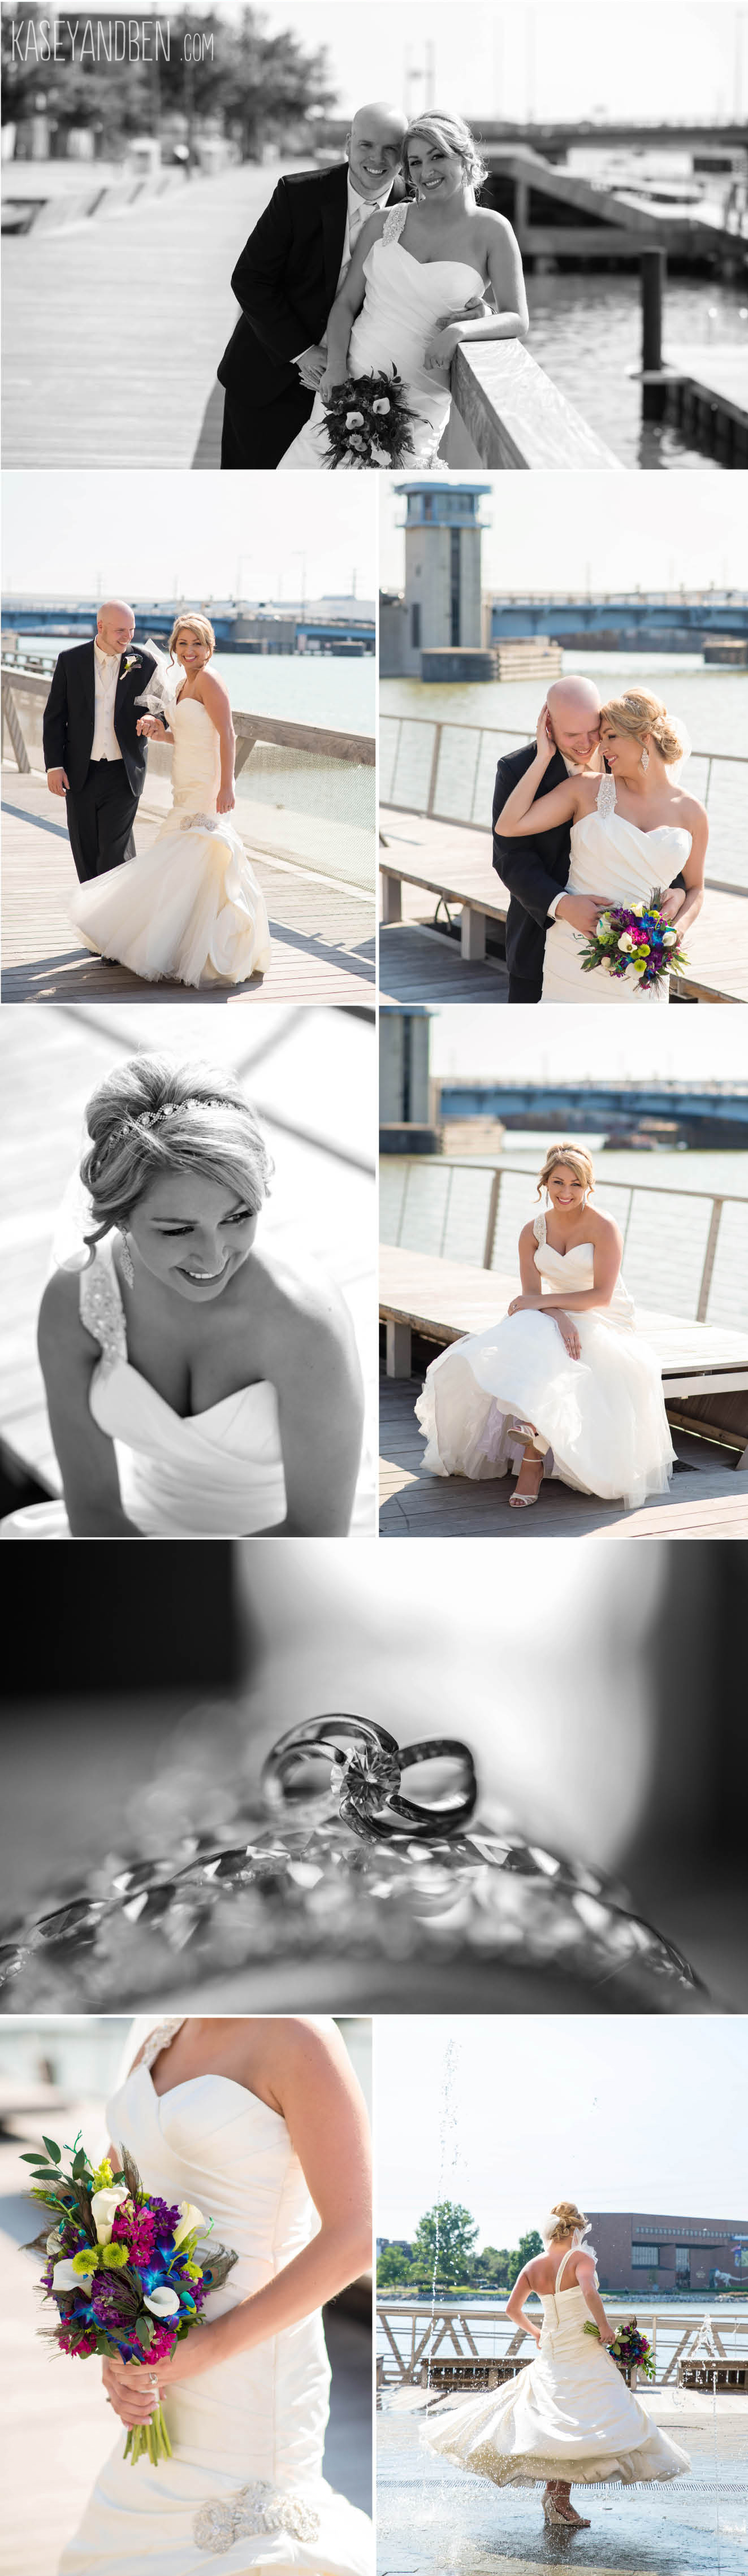 Green-Bay-Wedding-Photographer-Citydeck-Church-Lambeau-Field2